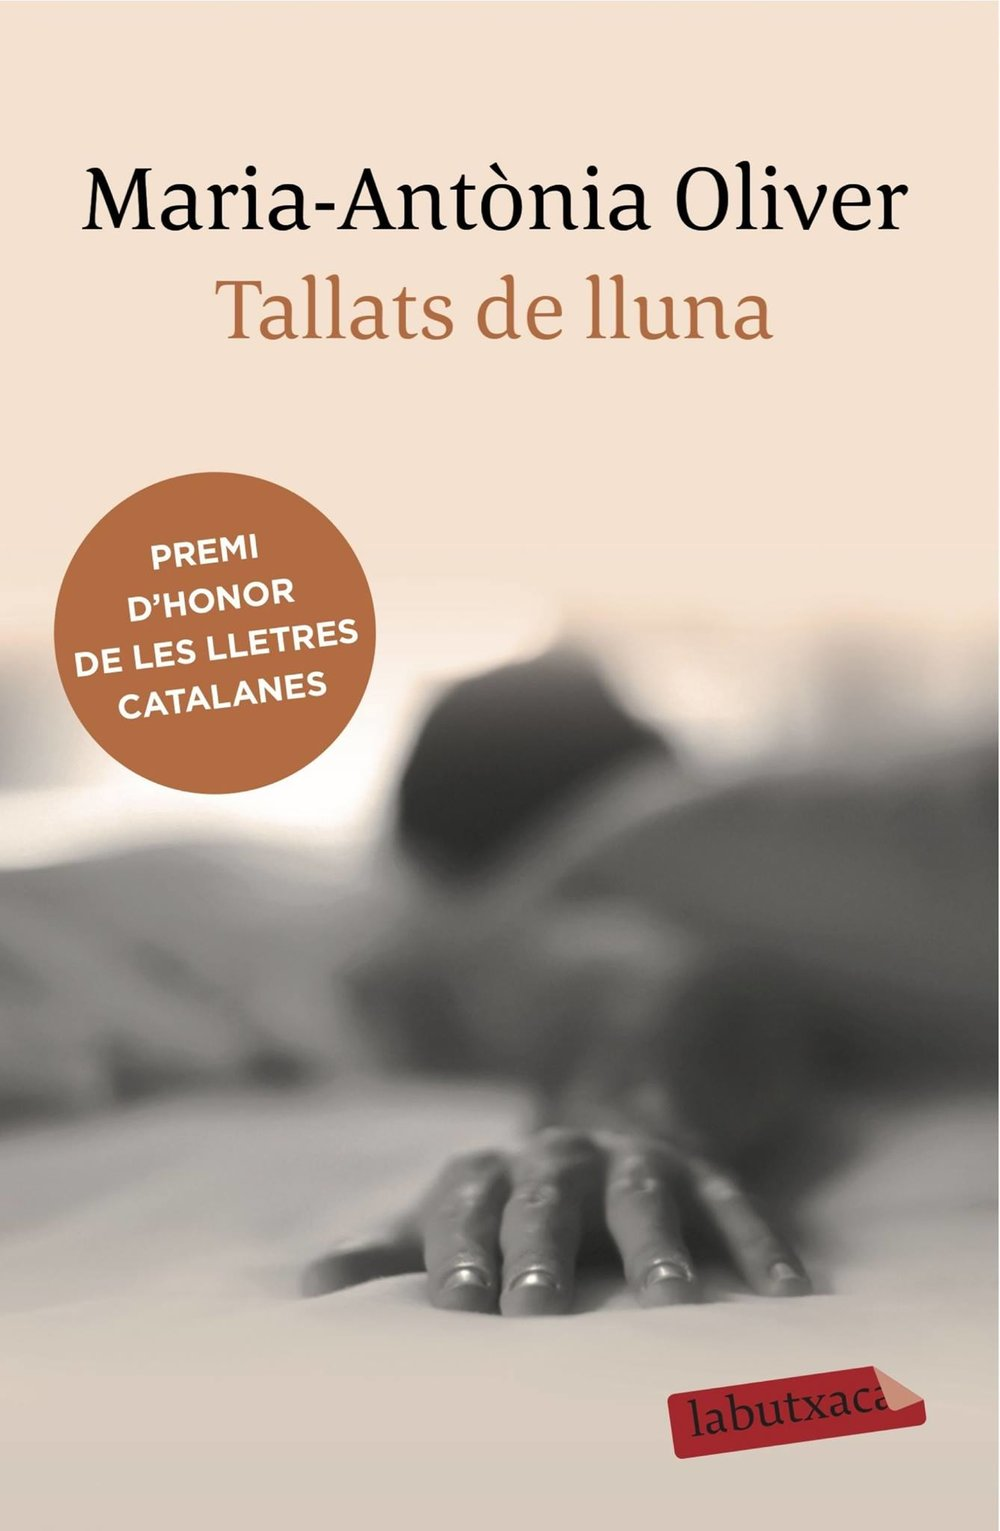 SPAIN 2016 (MARIA-ANTÓNIA OLIVER , BOOK COVER)